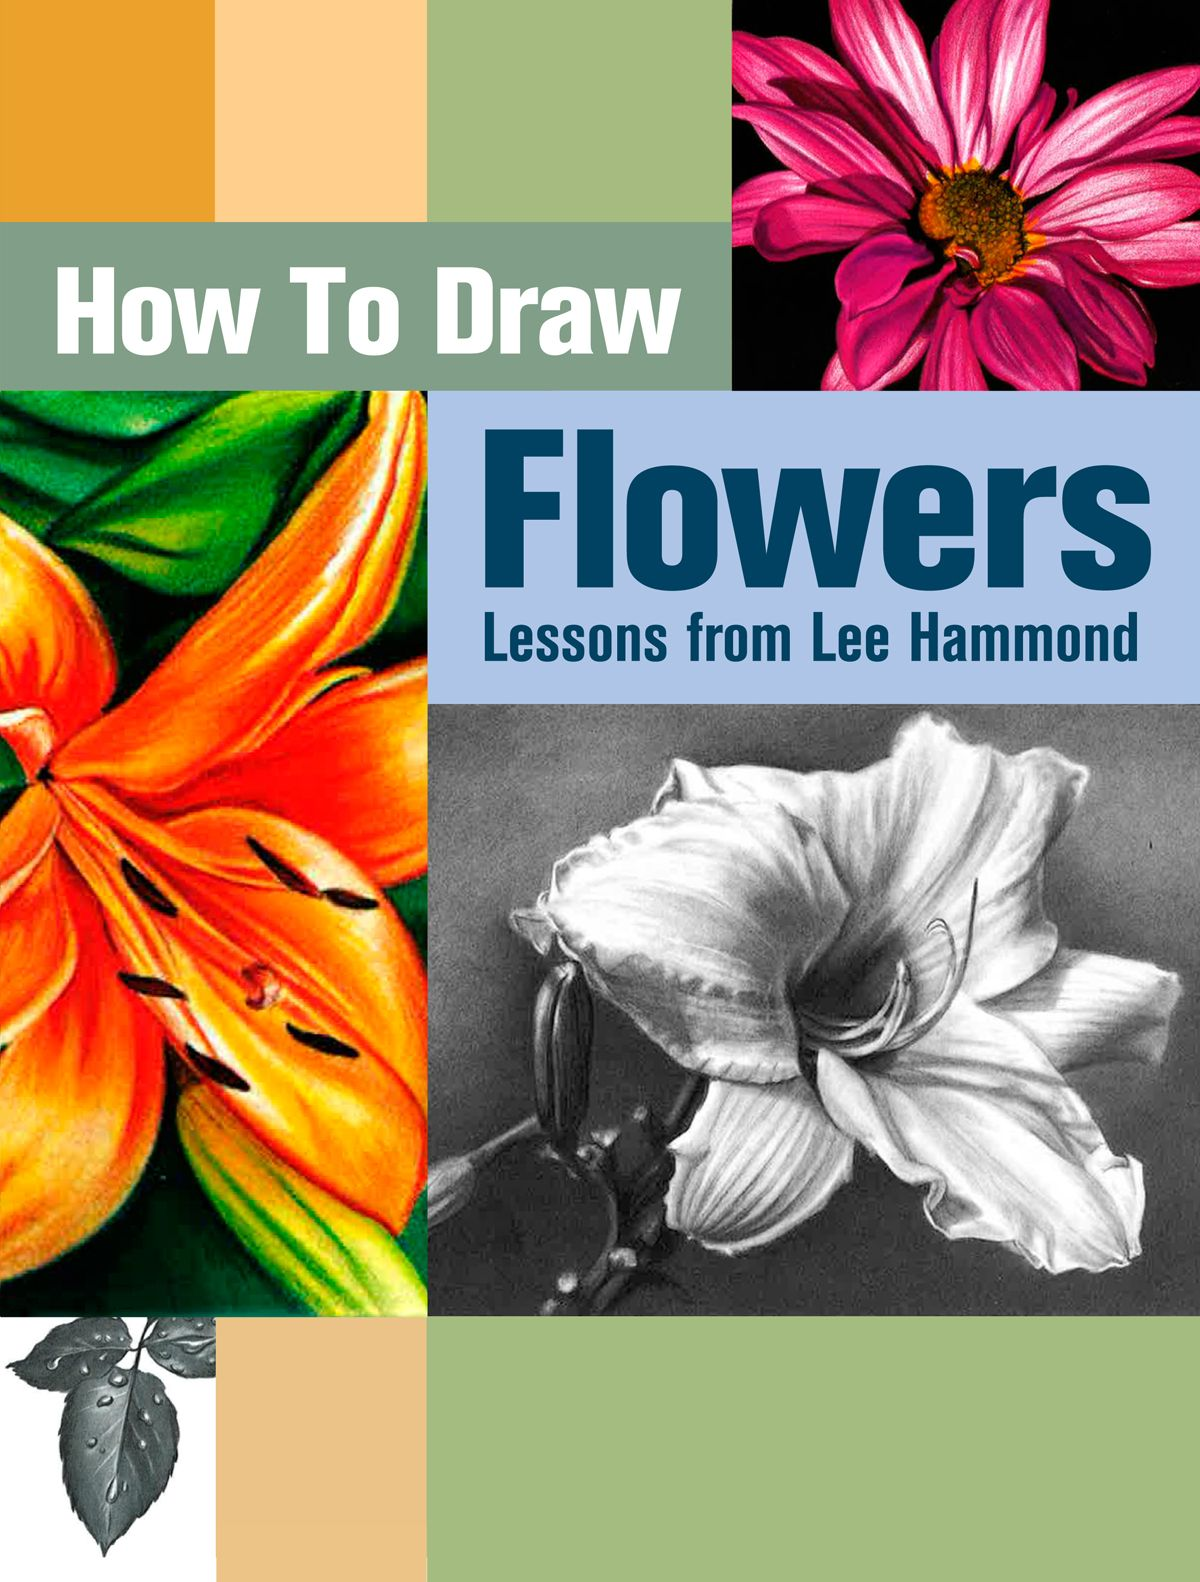 Flower-Drawing-eBook.jpg (1200×1582)